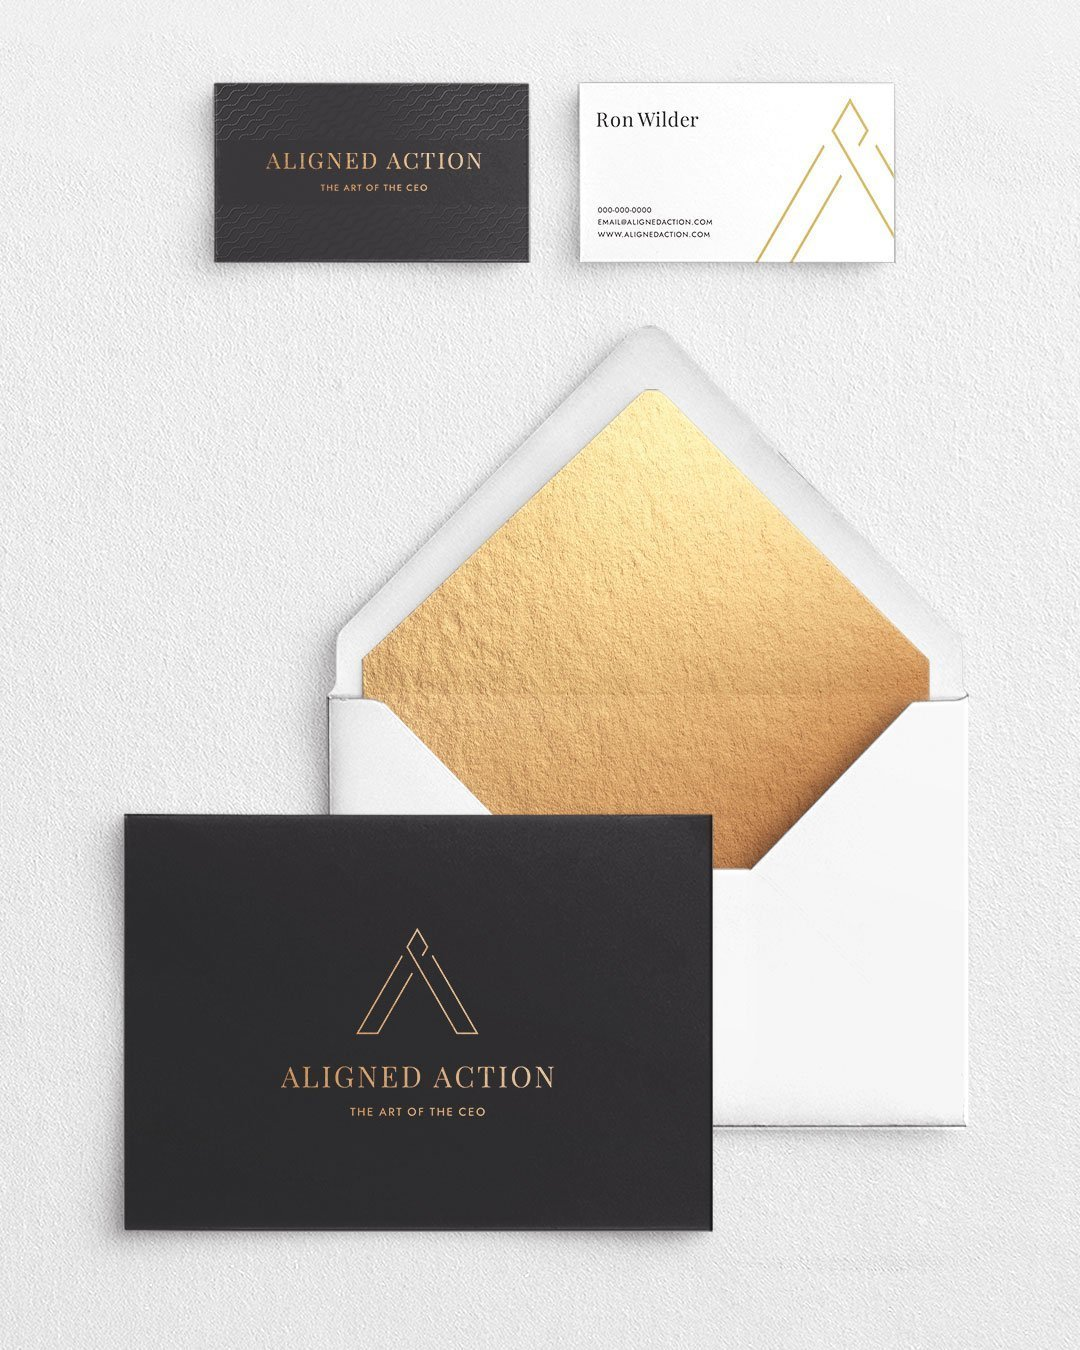 aligned action notecard business card